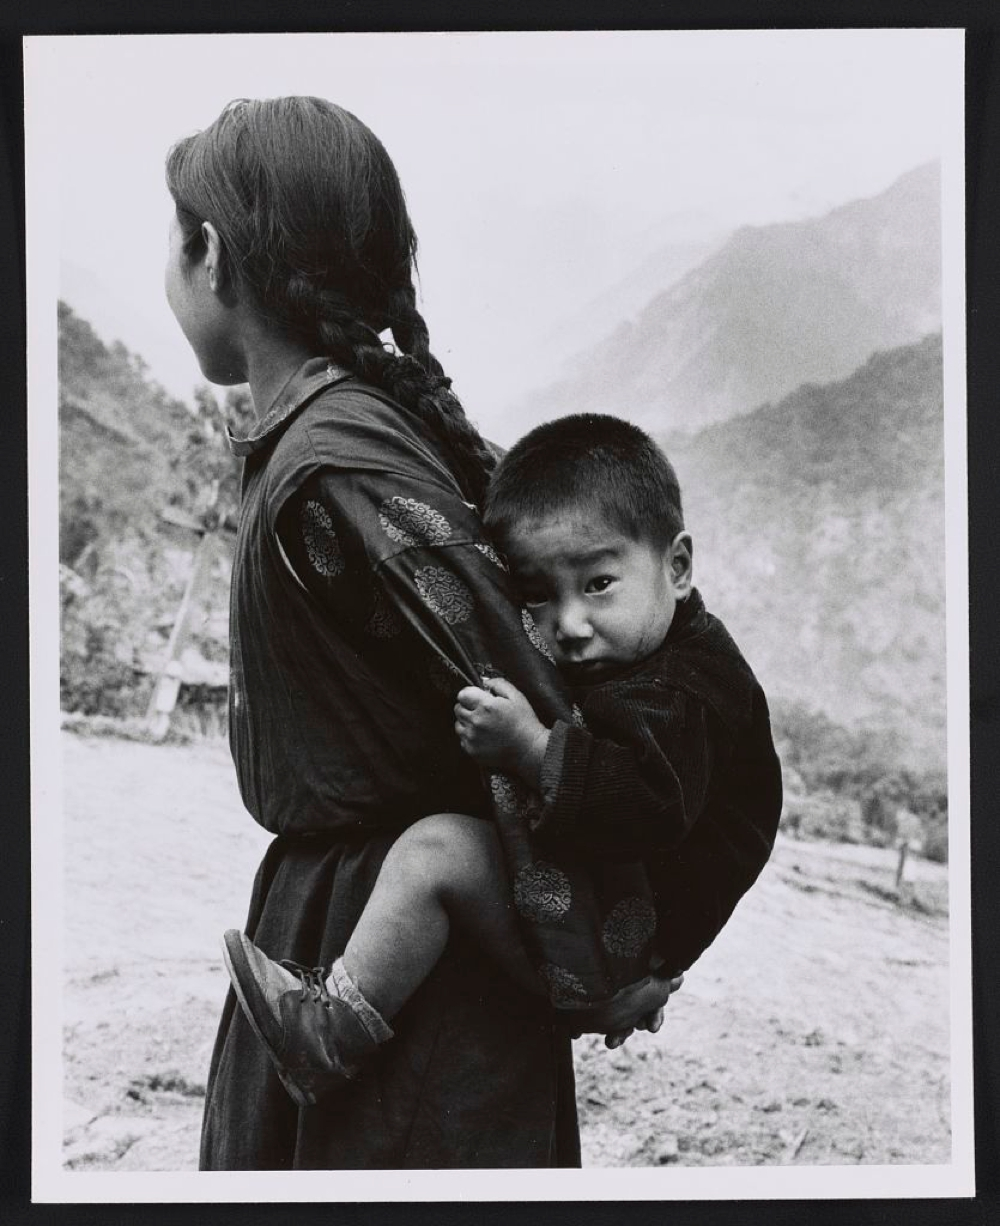 Young woman with a small child on her back, Sikkim